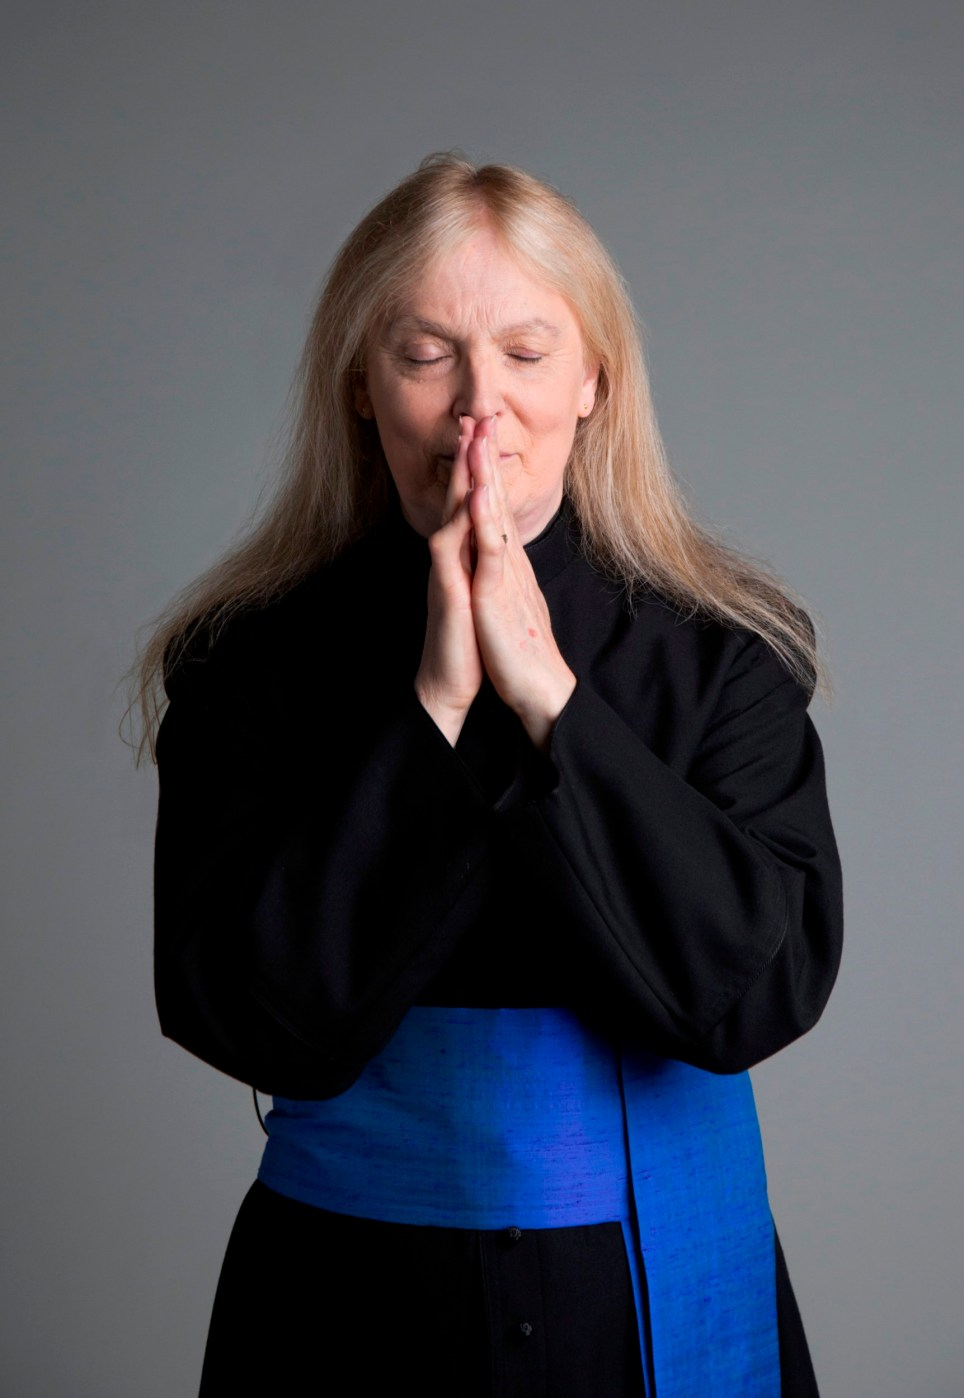 Revd Dr. Christina Beardsley. See SWNS story SWPRIEST; A groundbreaking exhibition has opened, showcasing for the first time in the UK the plight - of transgender PRIESTS. A number of brave priests have been photographed as part of the project that shows the struggles of those who face gender issues within their various religions. The Revd Dr Christina Beardsley is a Church of England priest used to be a hospital chaplain at Chelsea and Westminster Hospital - and she doesn't consider herself a man or a woman. Twilight People: Stories of Faith and Gender Beyond the Binary, collects sound, video, photographs, letters and objects revealing the hidden history of ìgender variantî people of Christian Muslim and Jewish faiths.